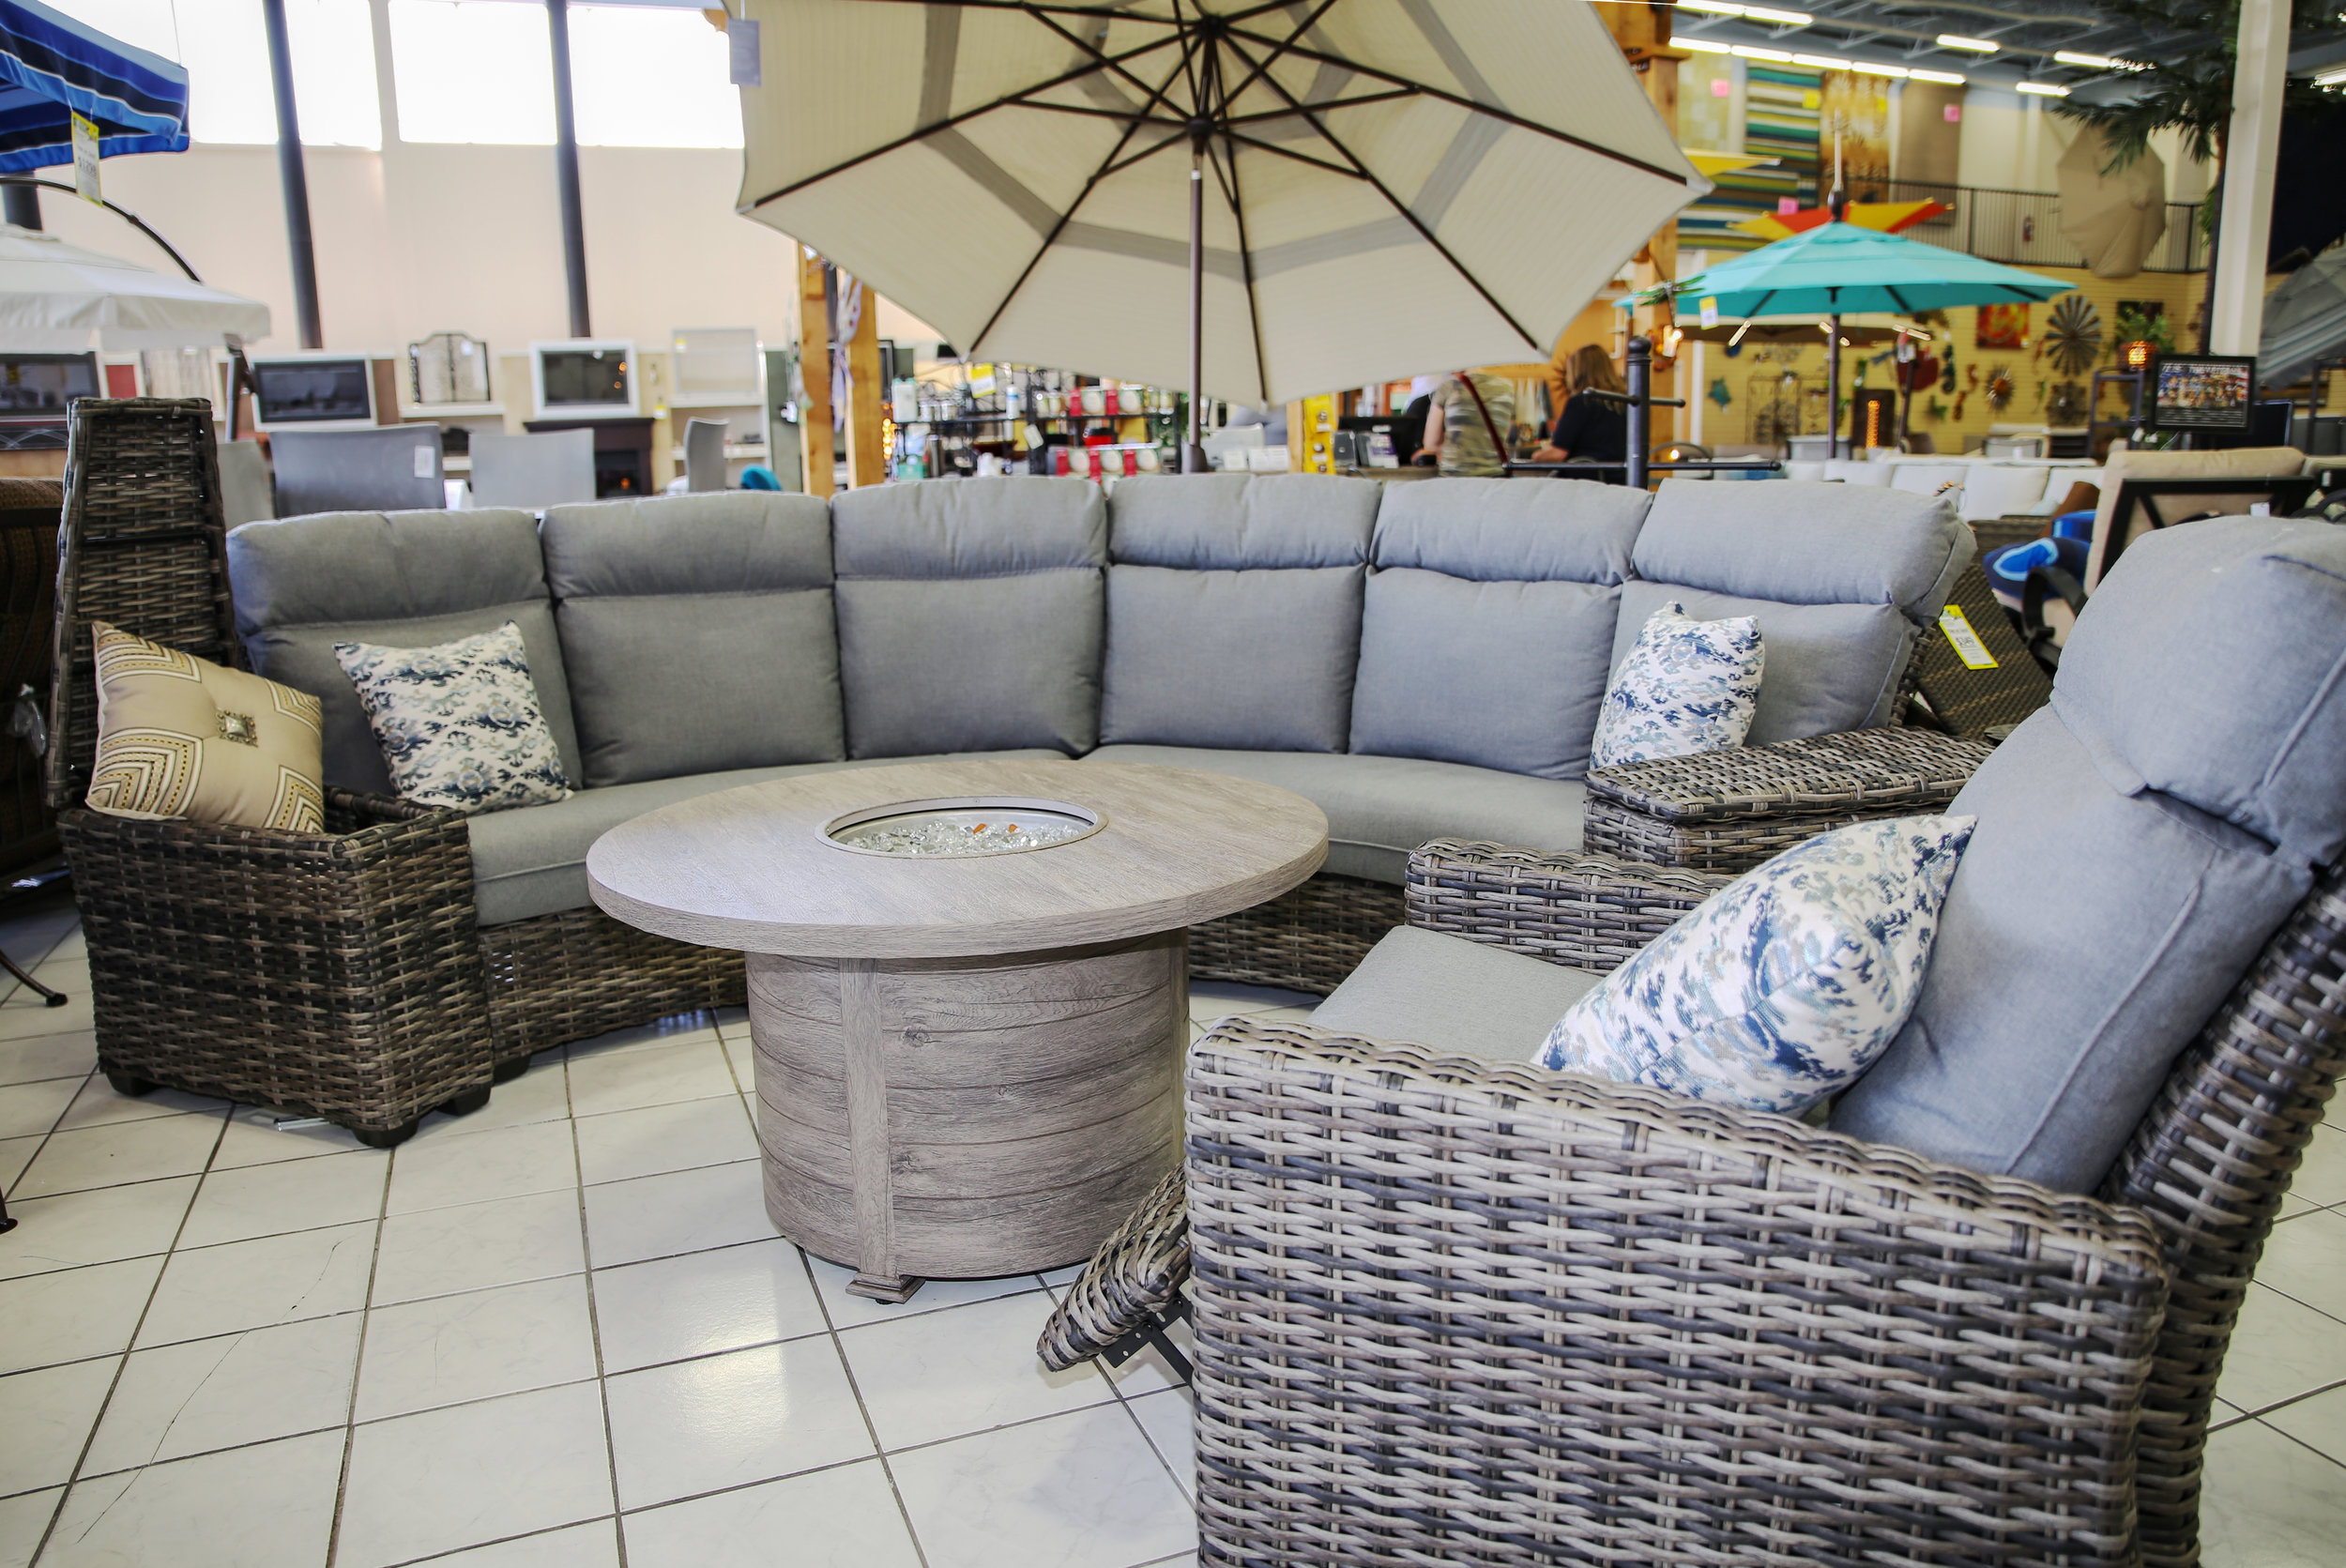 Wicker Curved Sectional so you can make it as big as you want. Stocked in both Grey and Brown